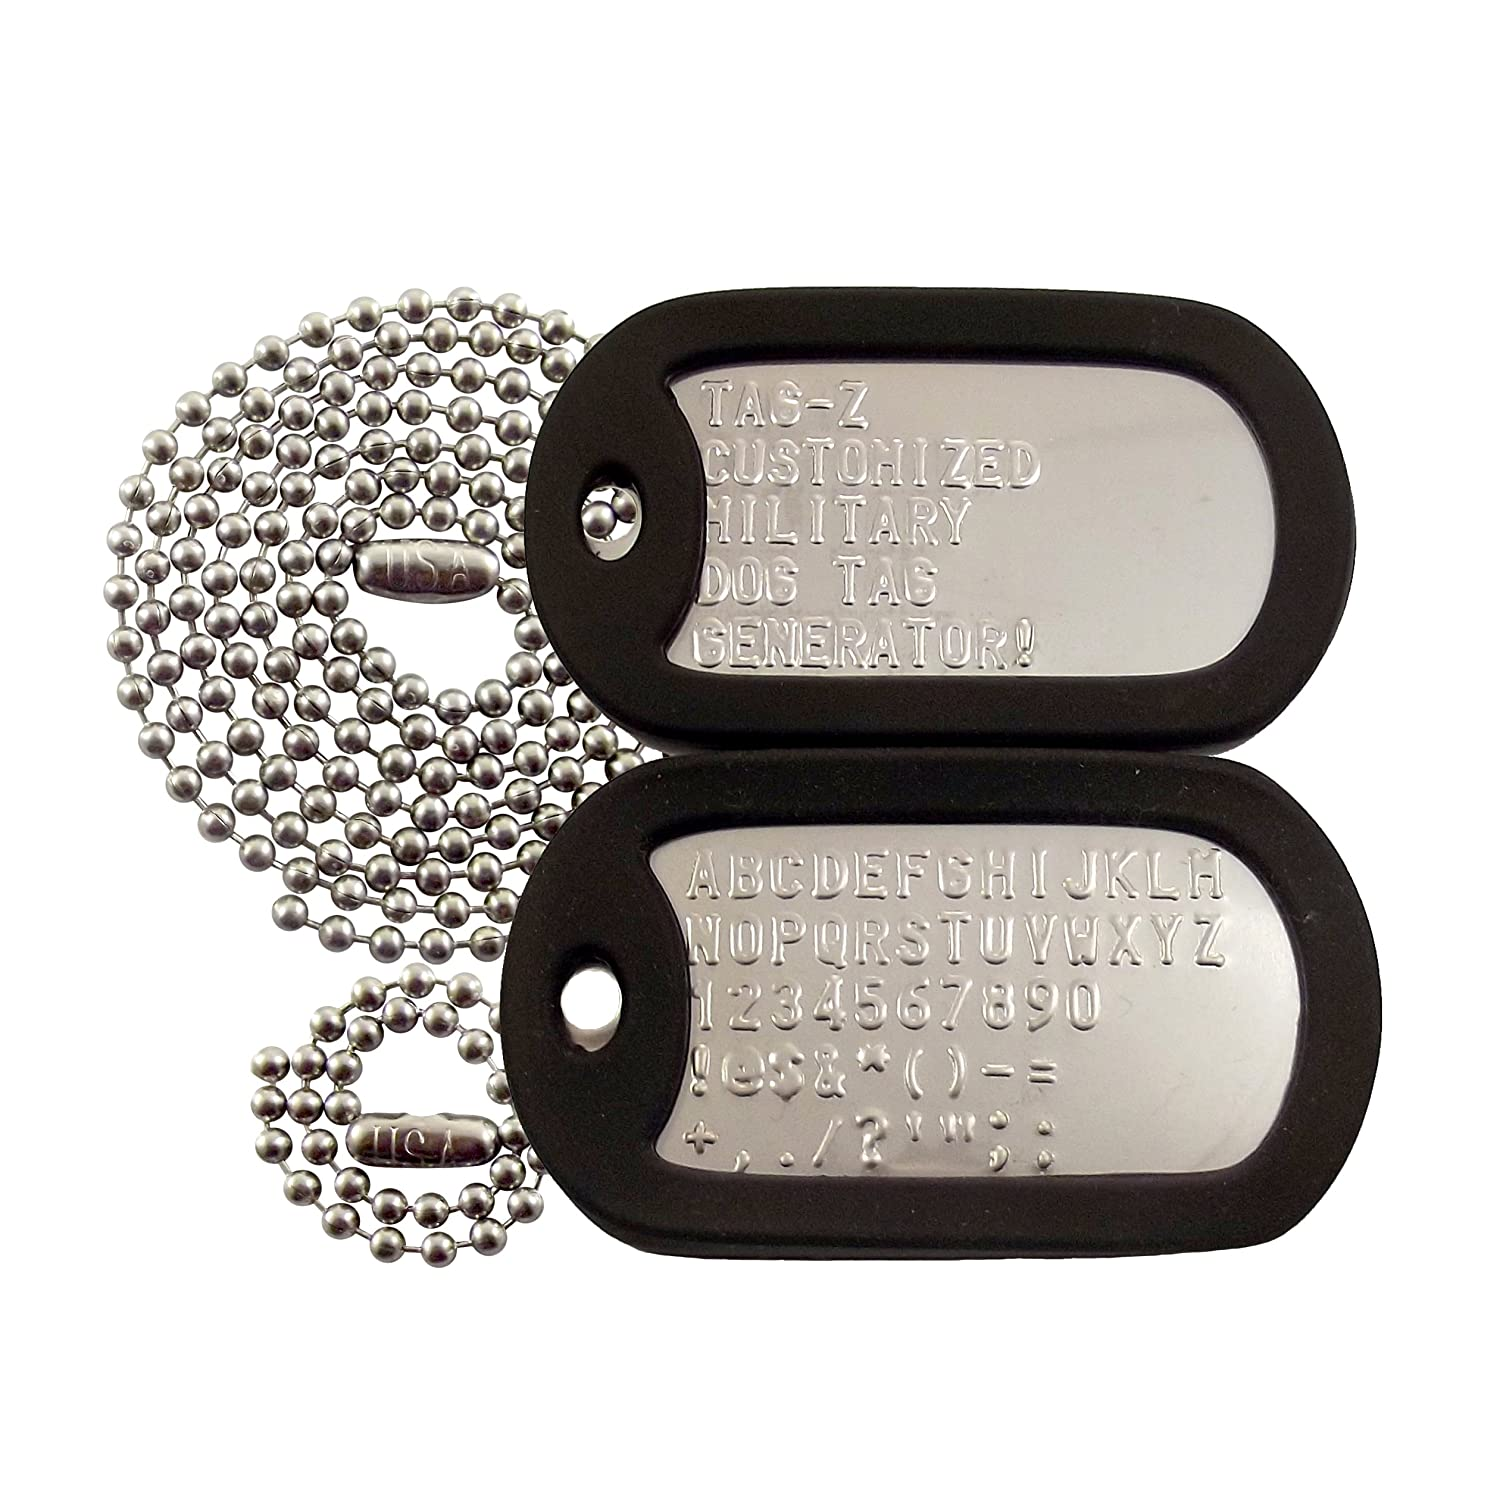 c7d05fca3476 Customized Military Dog Tags - Stainless Steel Dog Tags with Black Silencers